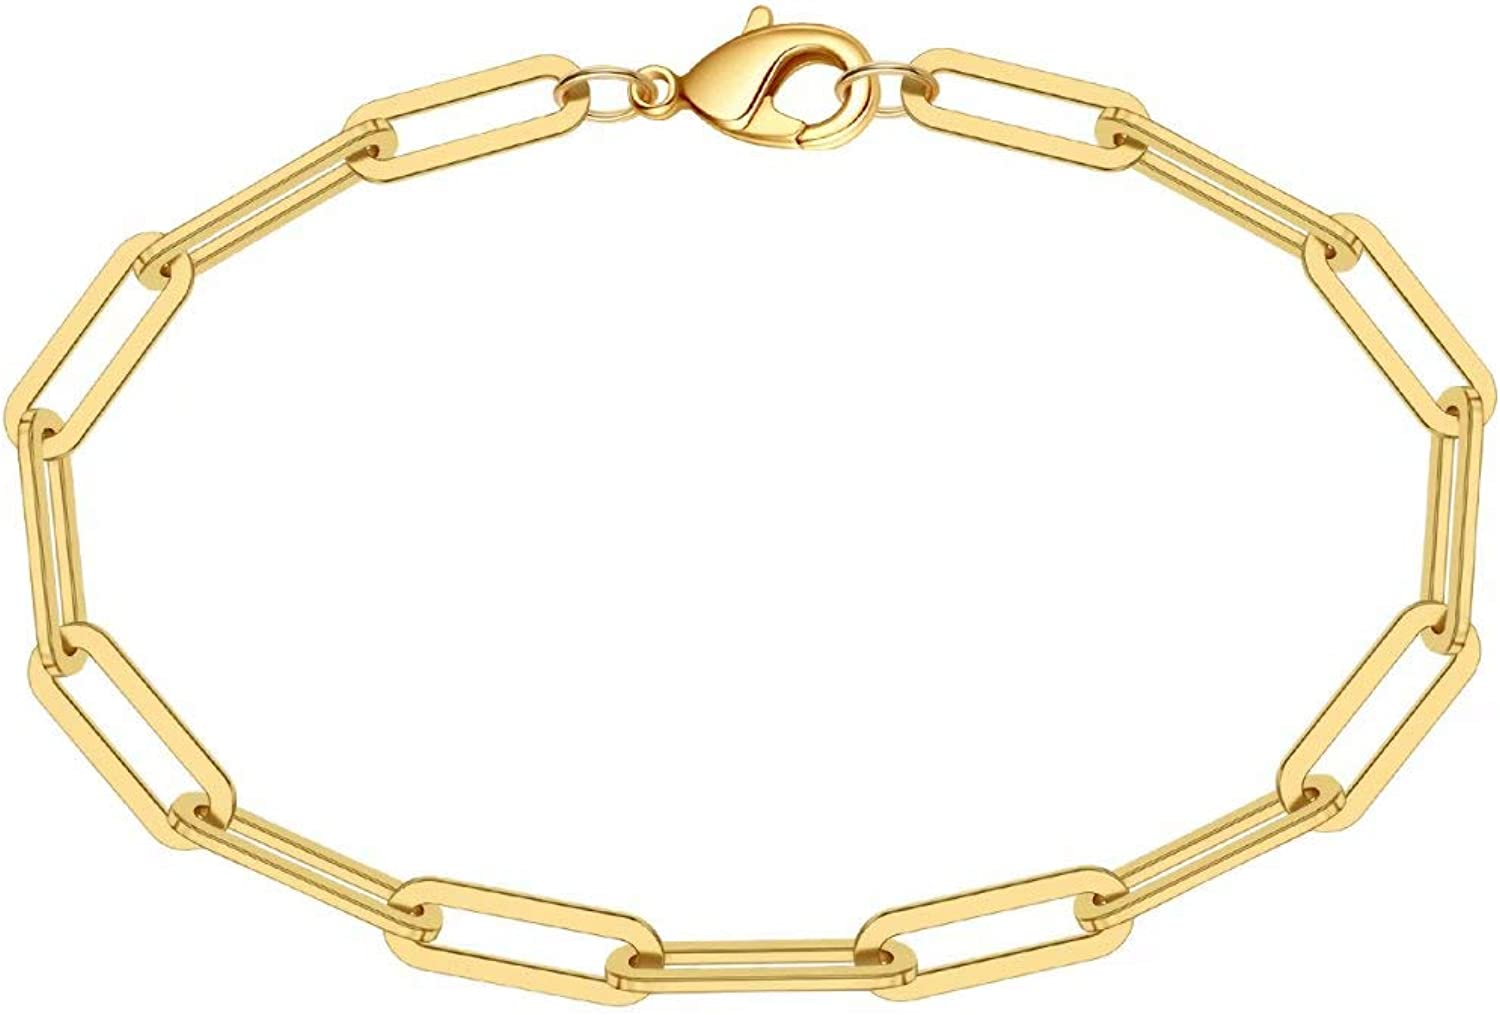 Turandoss Gold Paperclip Link Chain Necklace Bracelet Set, 21K Gold Plated  Dainty Oval Link Chain Necklace Bracelet Anklet Paperclip Chain Gold ...